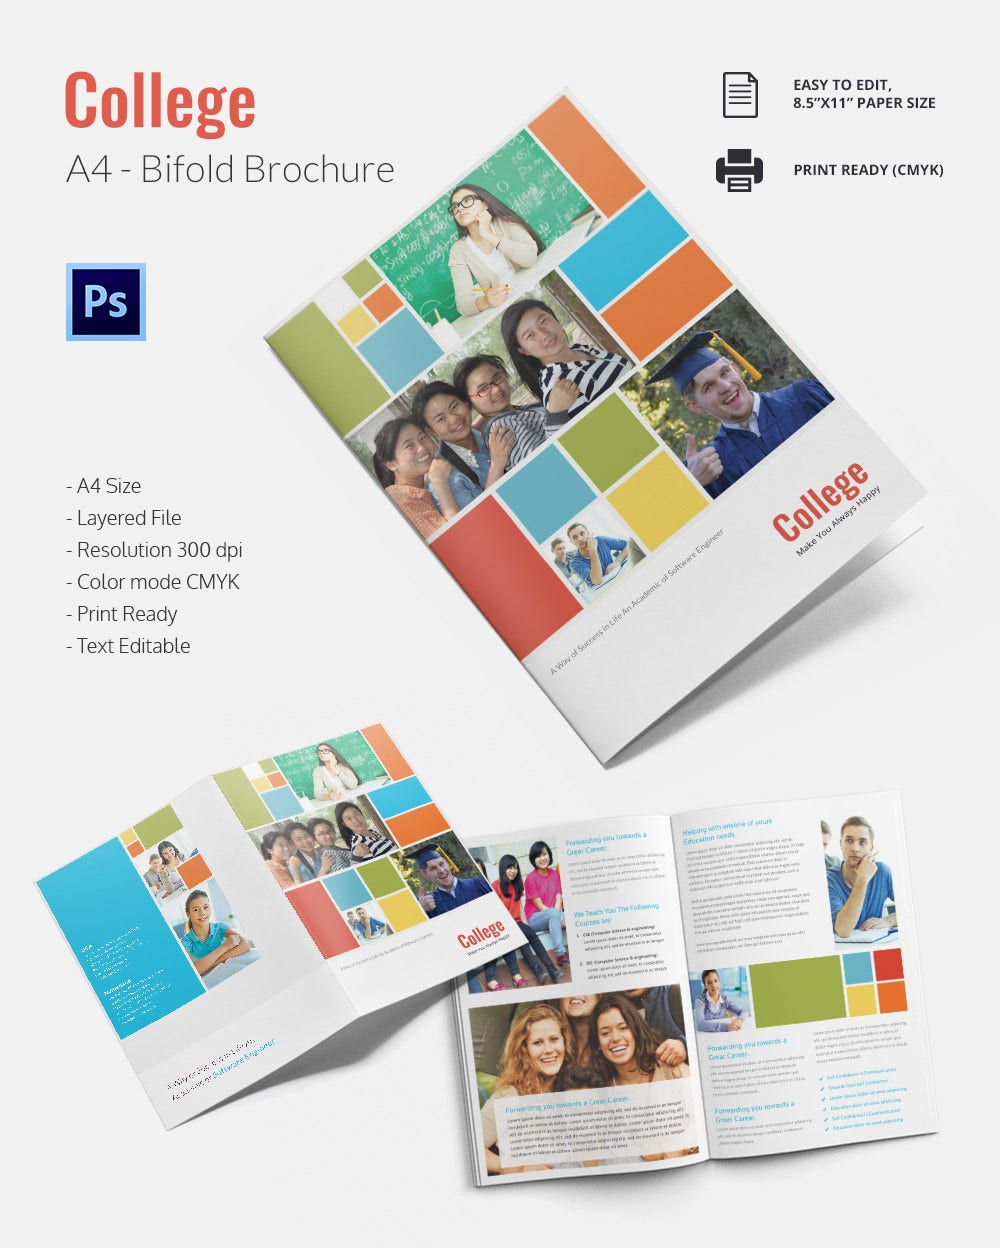 college brochure template  u2013 34  free jpg  psd  indesign